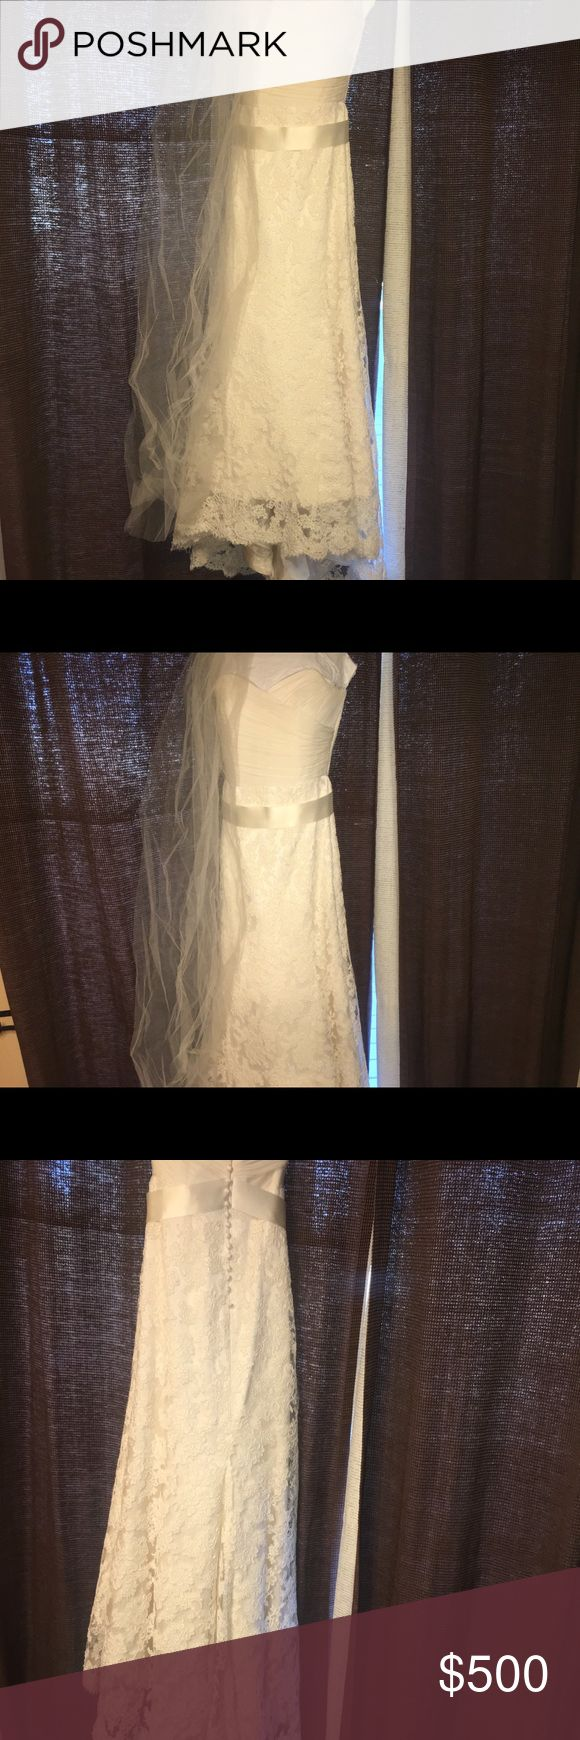 Modern Trousseau Wedding Dress Beautiful Modern Trousseau Wedding Dress. Size 10.  Only worn once, and has been dry cleaned. Also comes with a vail.  Only issue is there is a button that is a little snagged, and coming loose on the bottom back of the dress. But it is an easy fix.  The style name is Leah, and retail price was $4,200.  Would like at least $500 for it, but i am moving here soon so i would like to get rid of it before the move. So, i am willing to negotiate on the price…